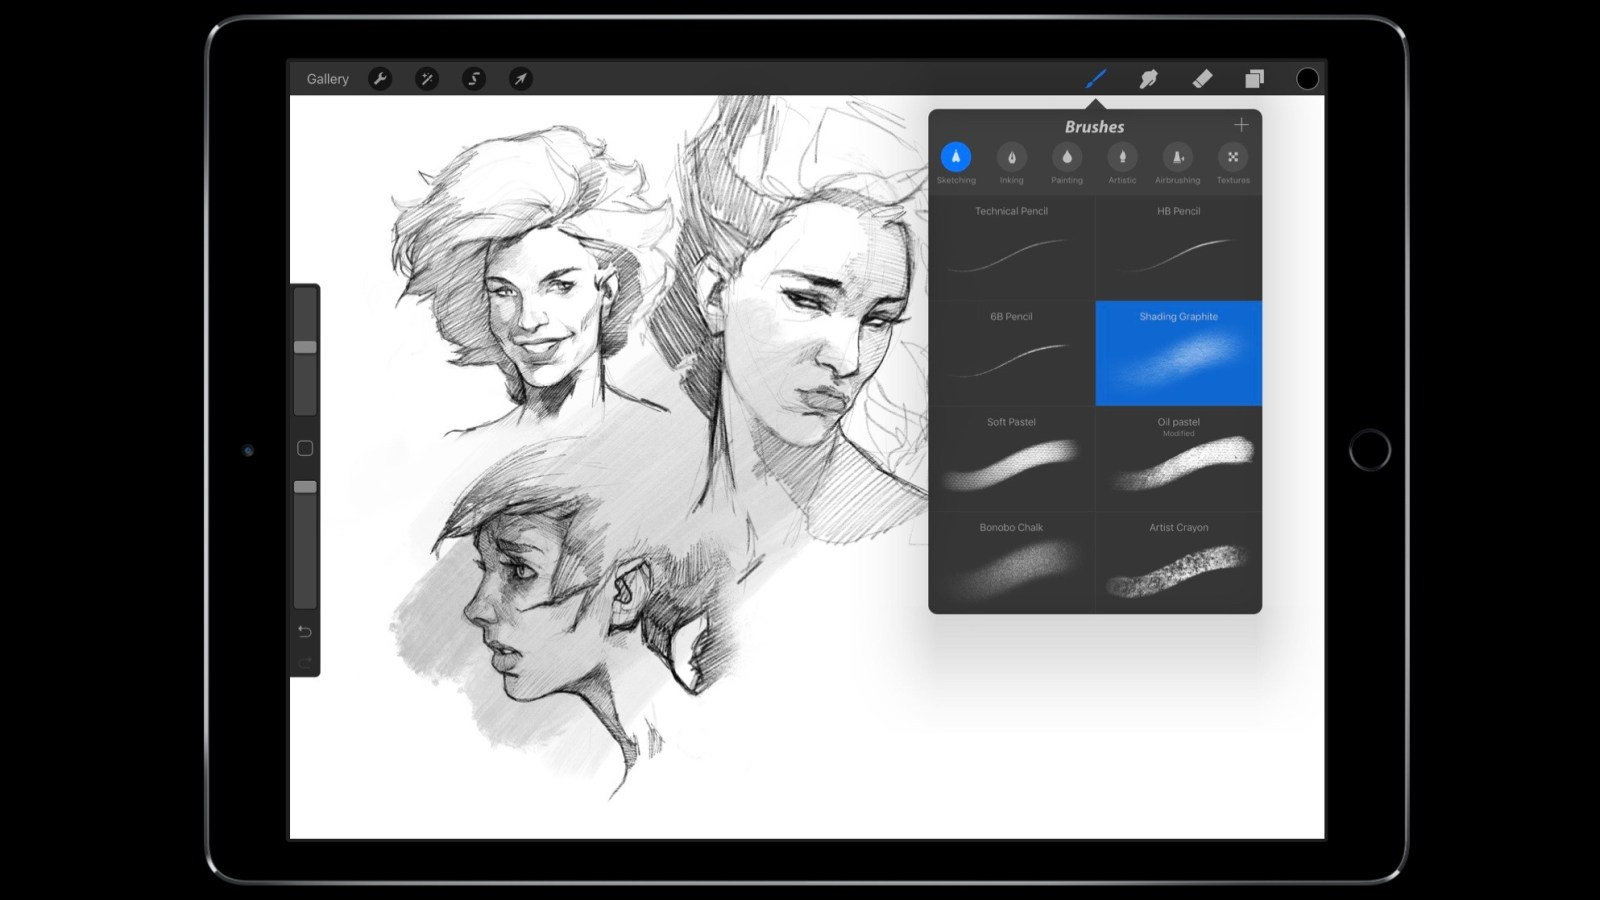 Procreate sketching app updated for new iPad Pros, major update coming this fall